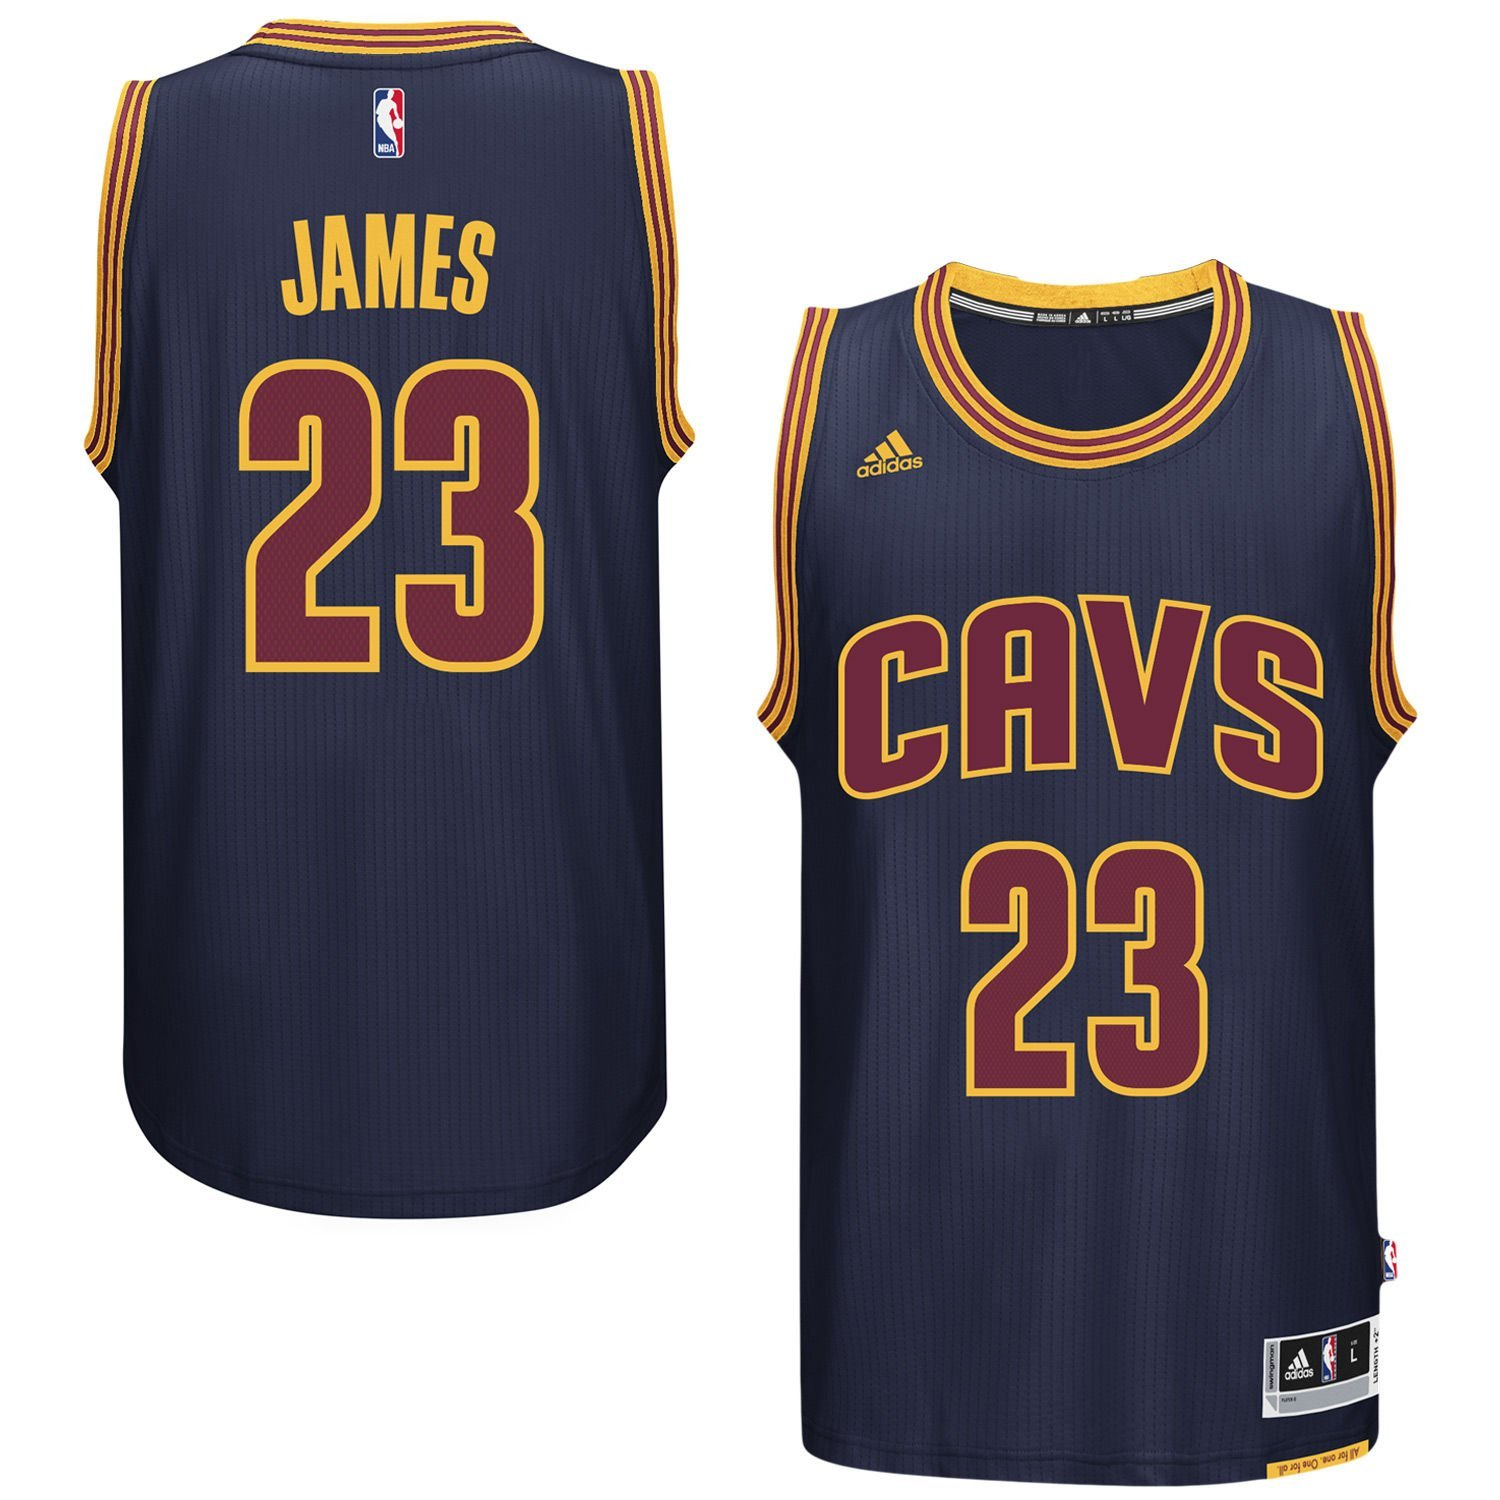 8f987b340202 Get Quotations · LeBron James Cleveland Cavaliers  23 Navy NBA Youth  Alternate Swingman Jersey